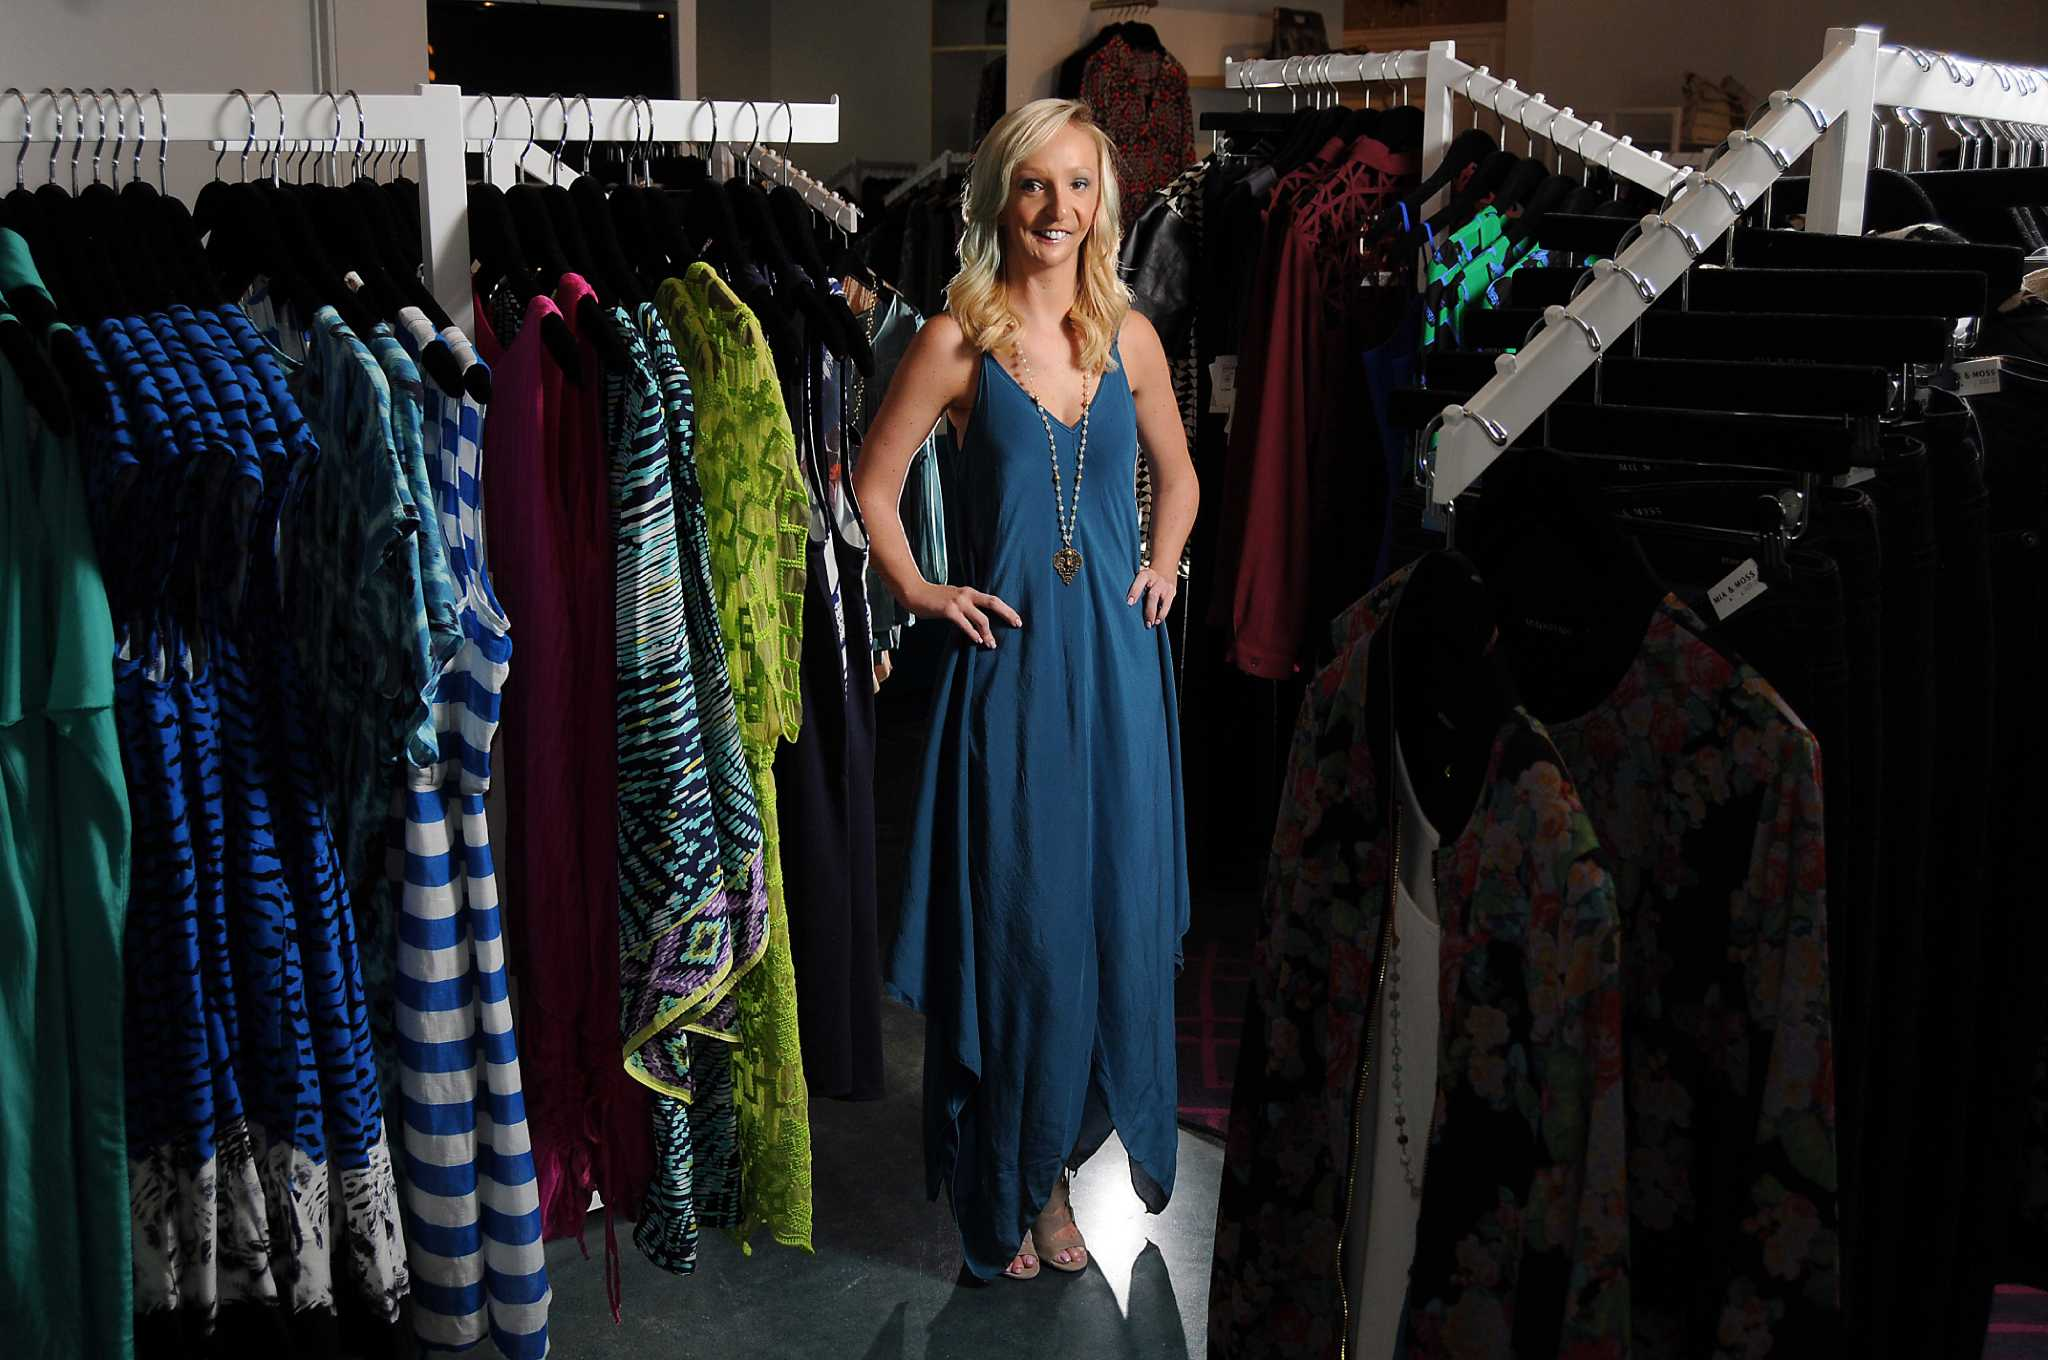 newest womens boutique carrying - HD2048×1360